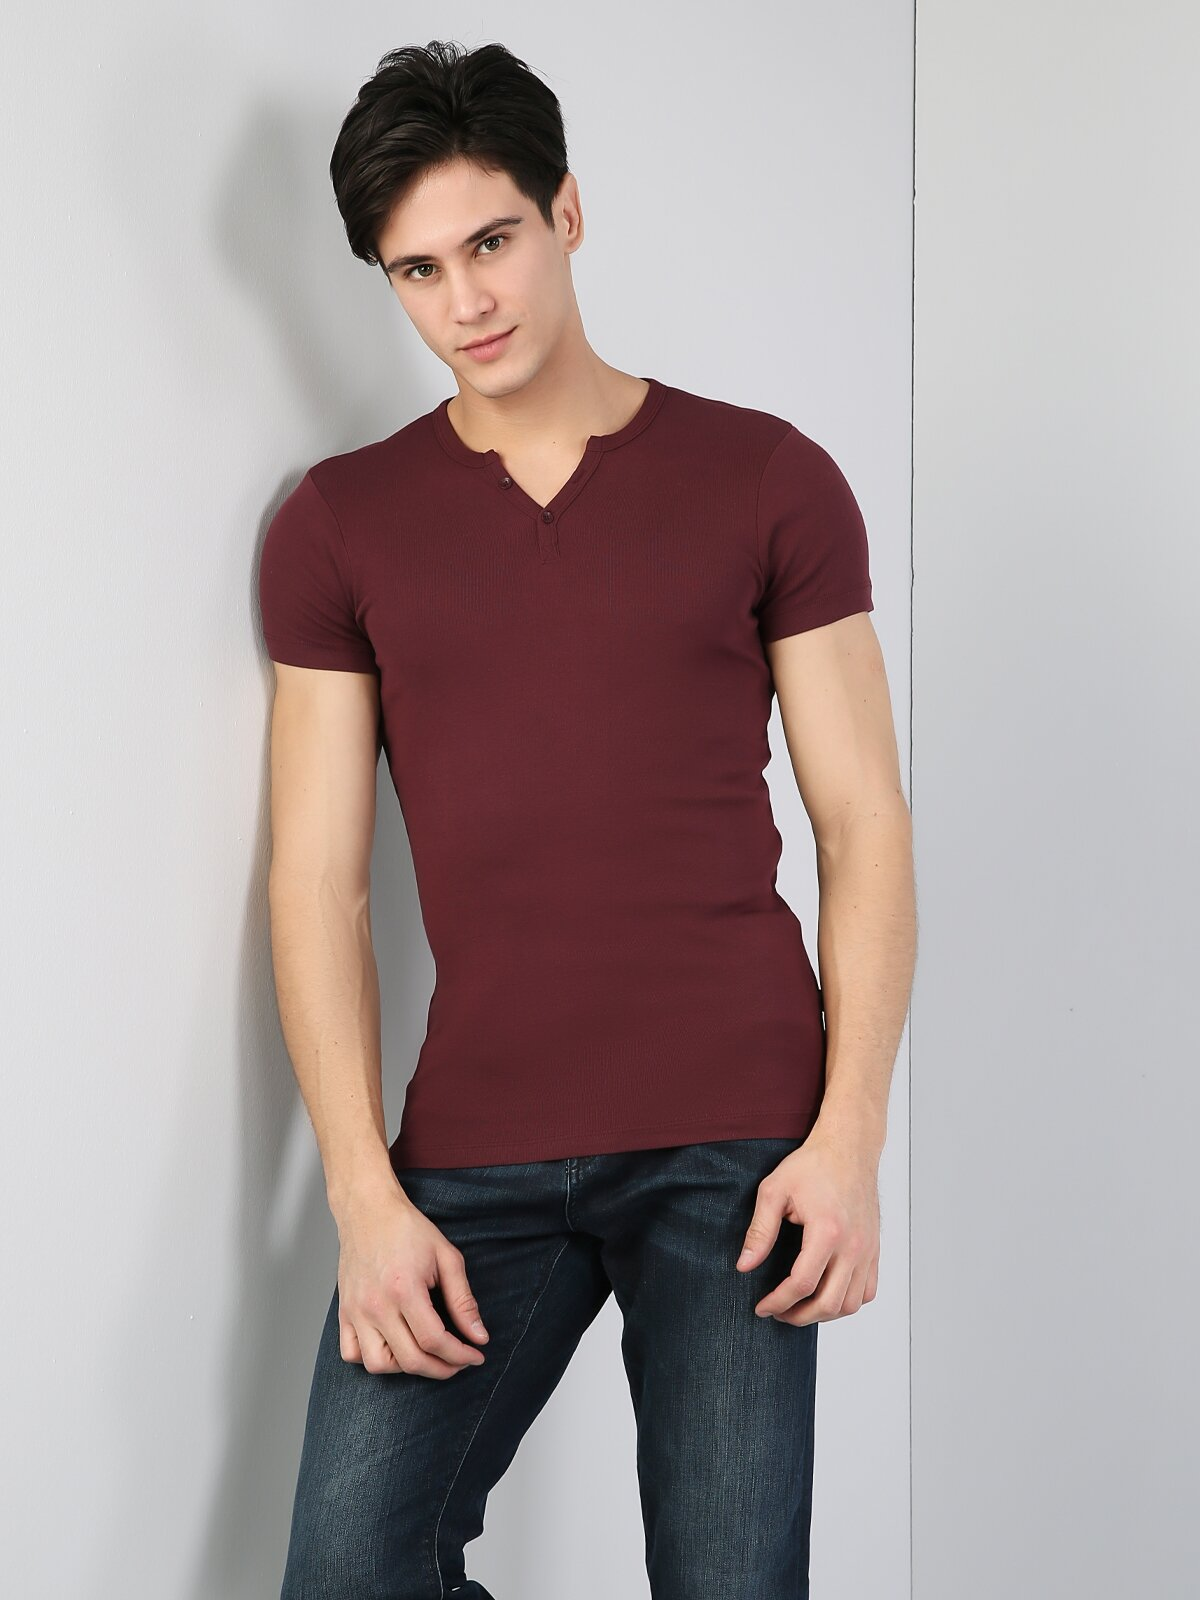 Slim Fit Placket Neck Erkek Bordo Kısa Kol Tişört